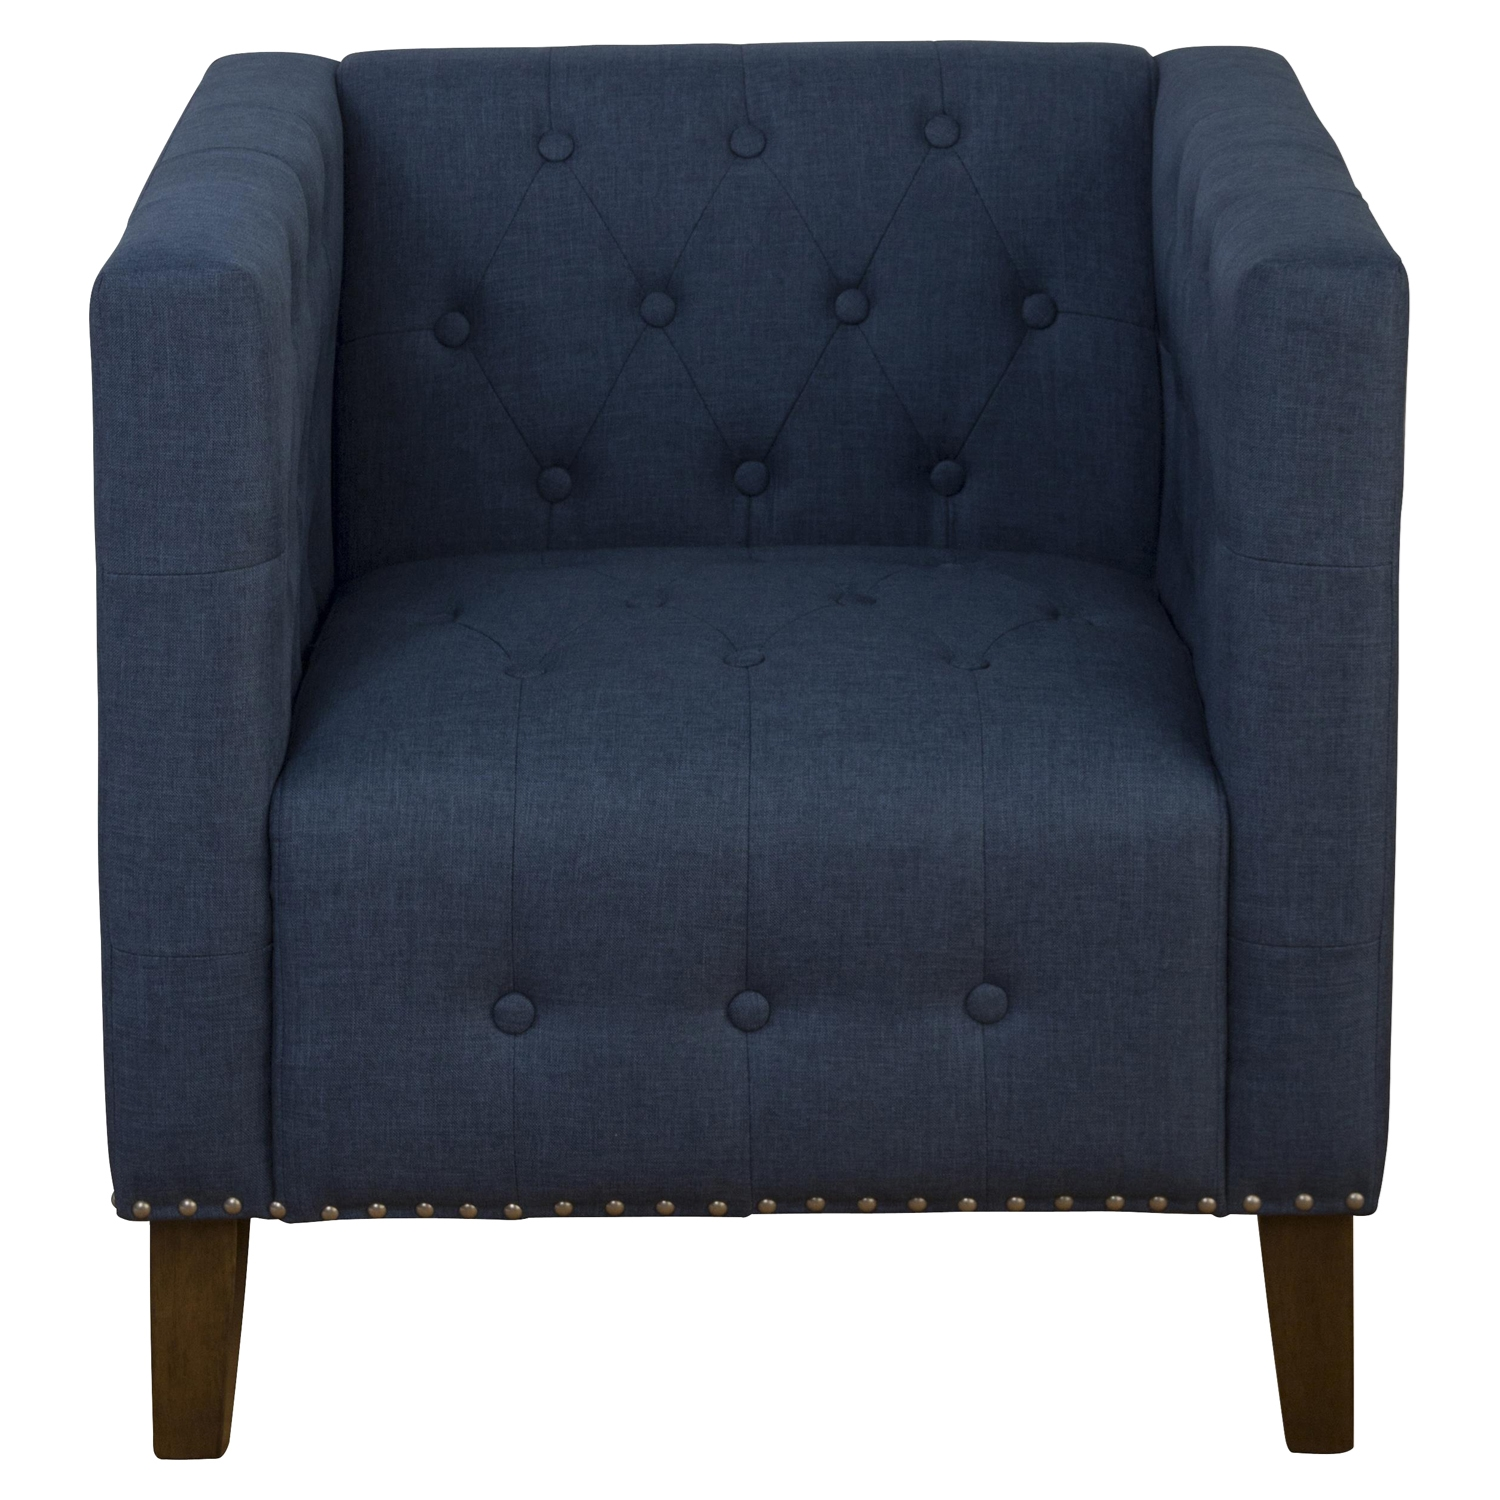 Zoe Tufted Nailhead Accent Chair - Blue - JOFR-ZOE-CH-BLUE